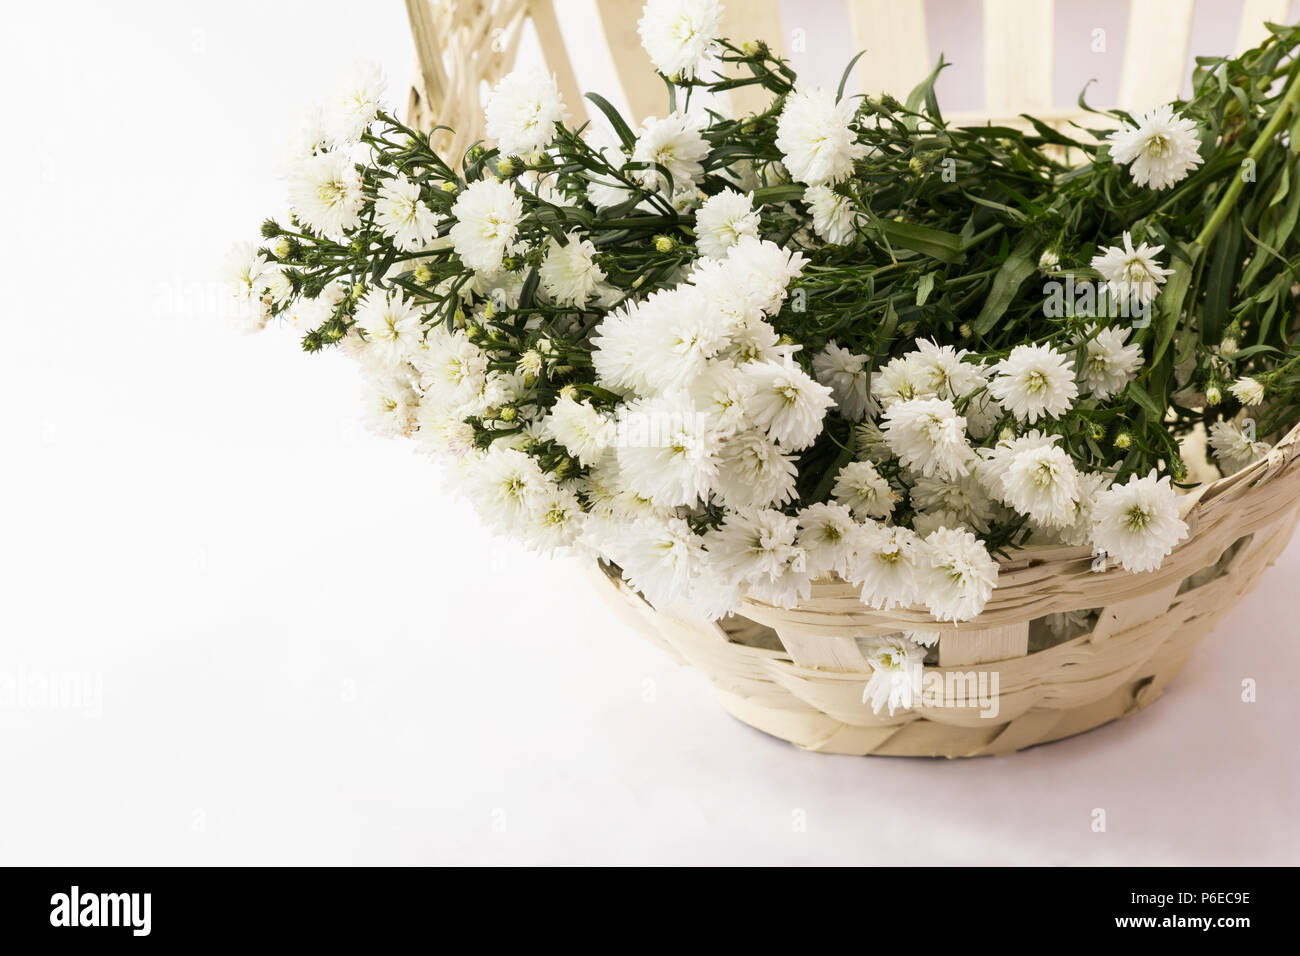 Asters white flowers in a basket on white background stock photo asters white flowers in a basket on white background mightylinksfo